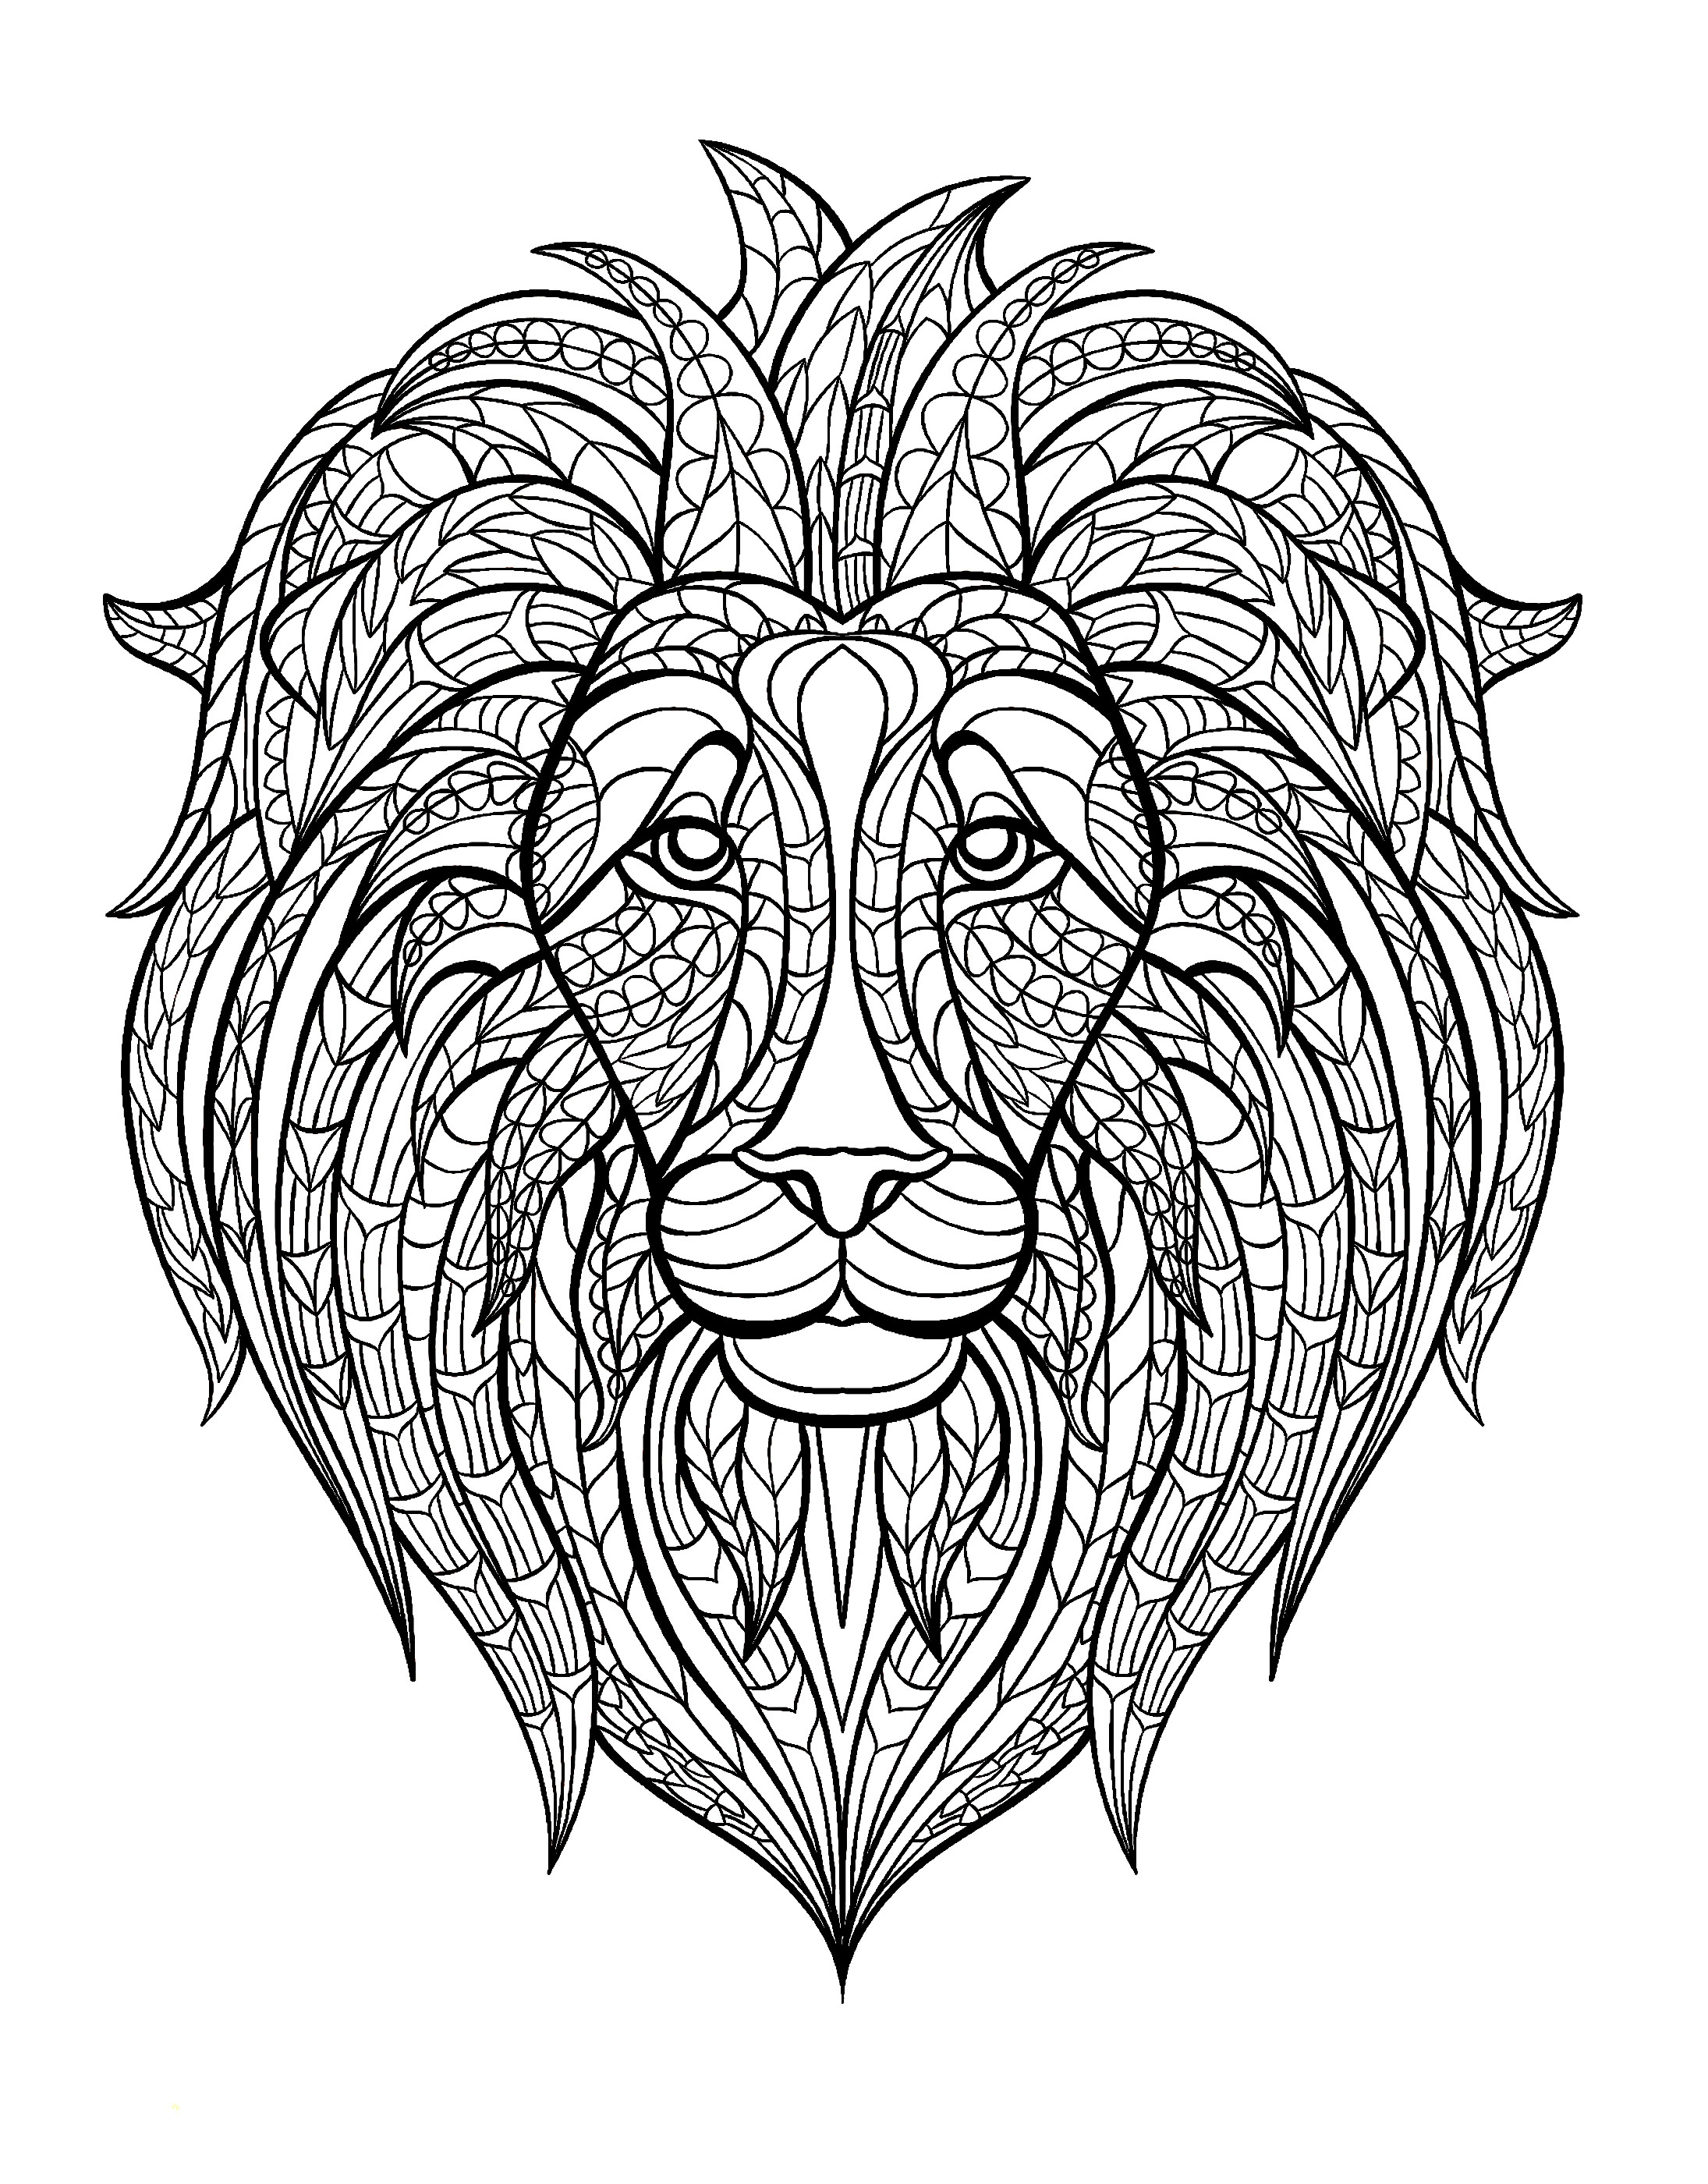 27 Lion Coloring Pages for Adults Collections | FREE COLORING PAGES ...